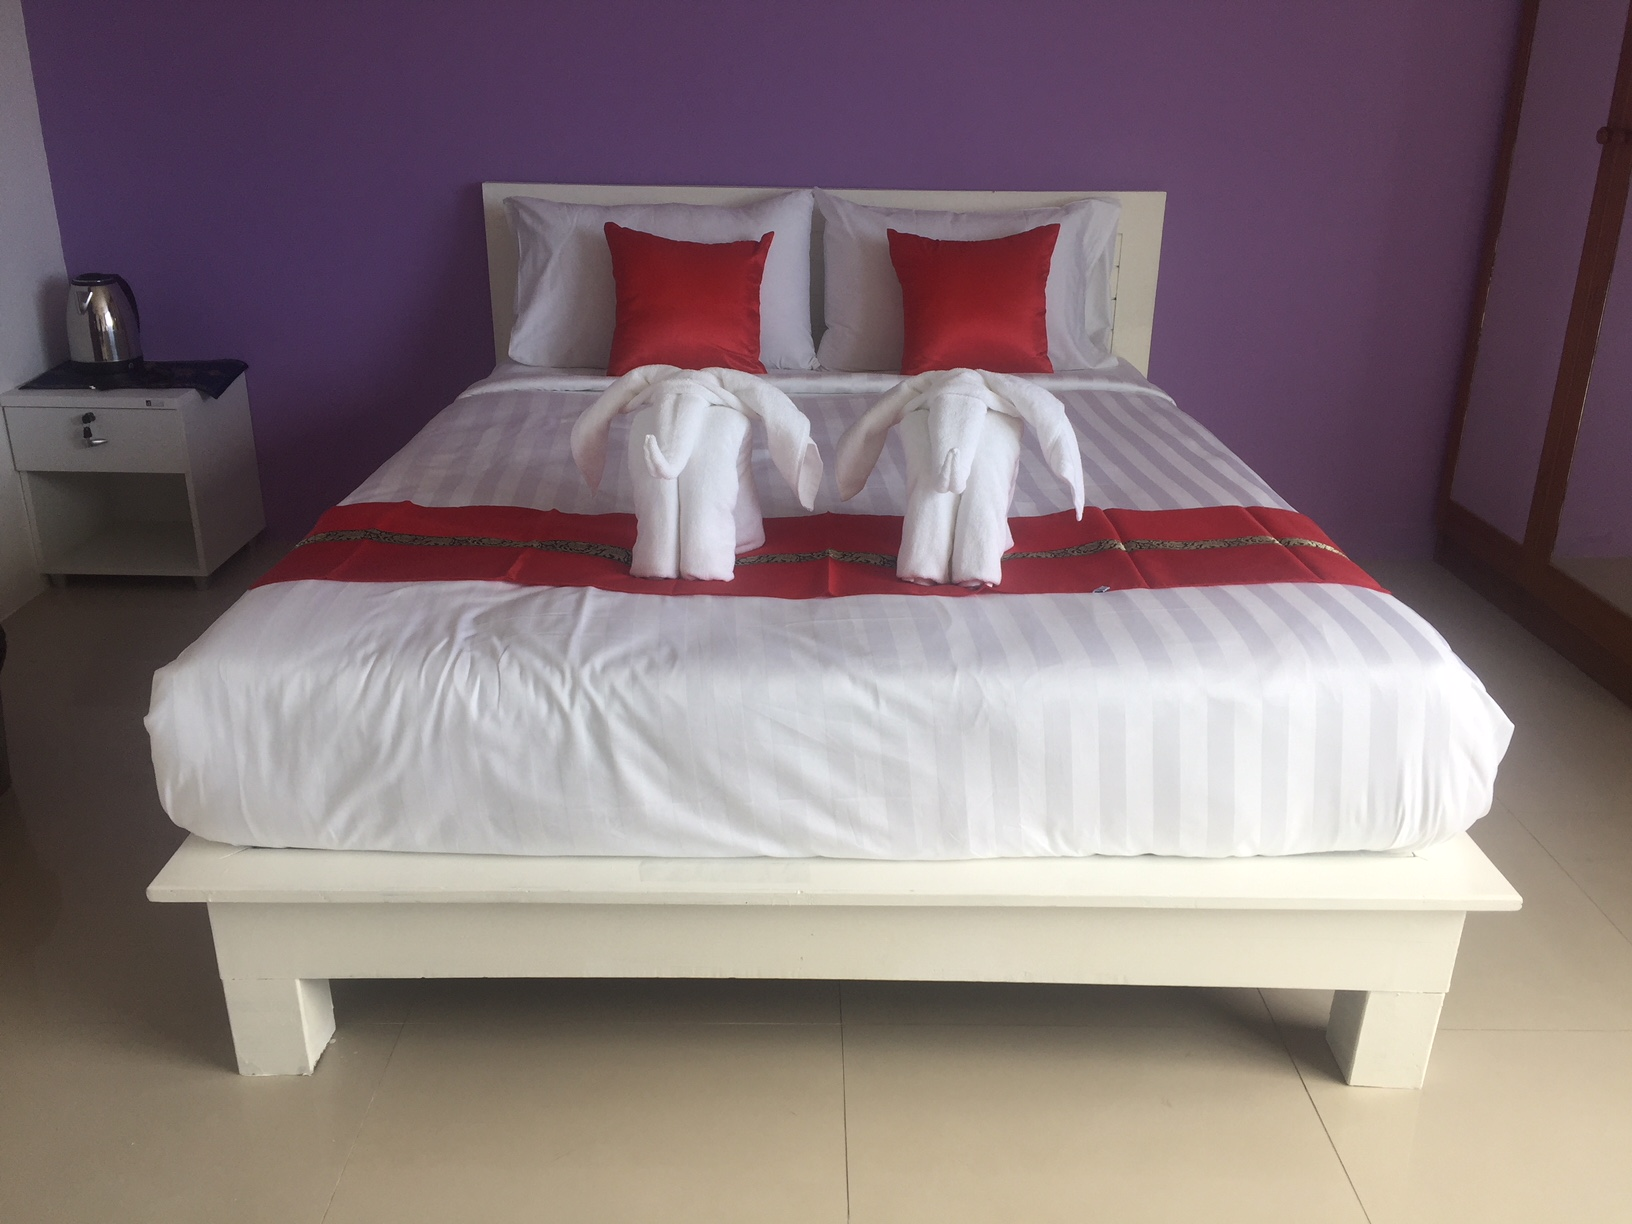 8 room guest house with bar for sale in Patong